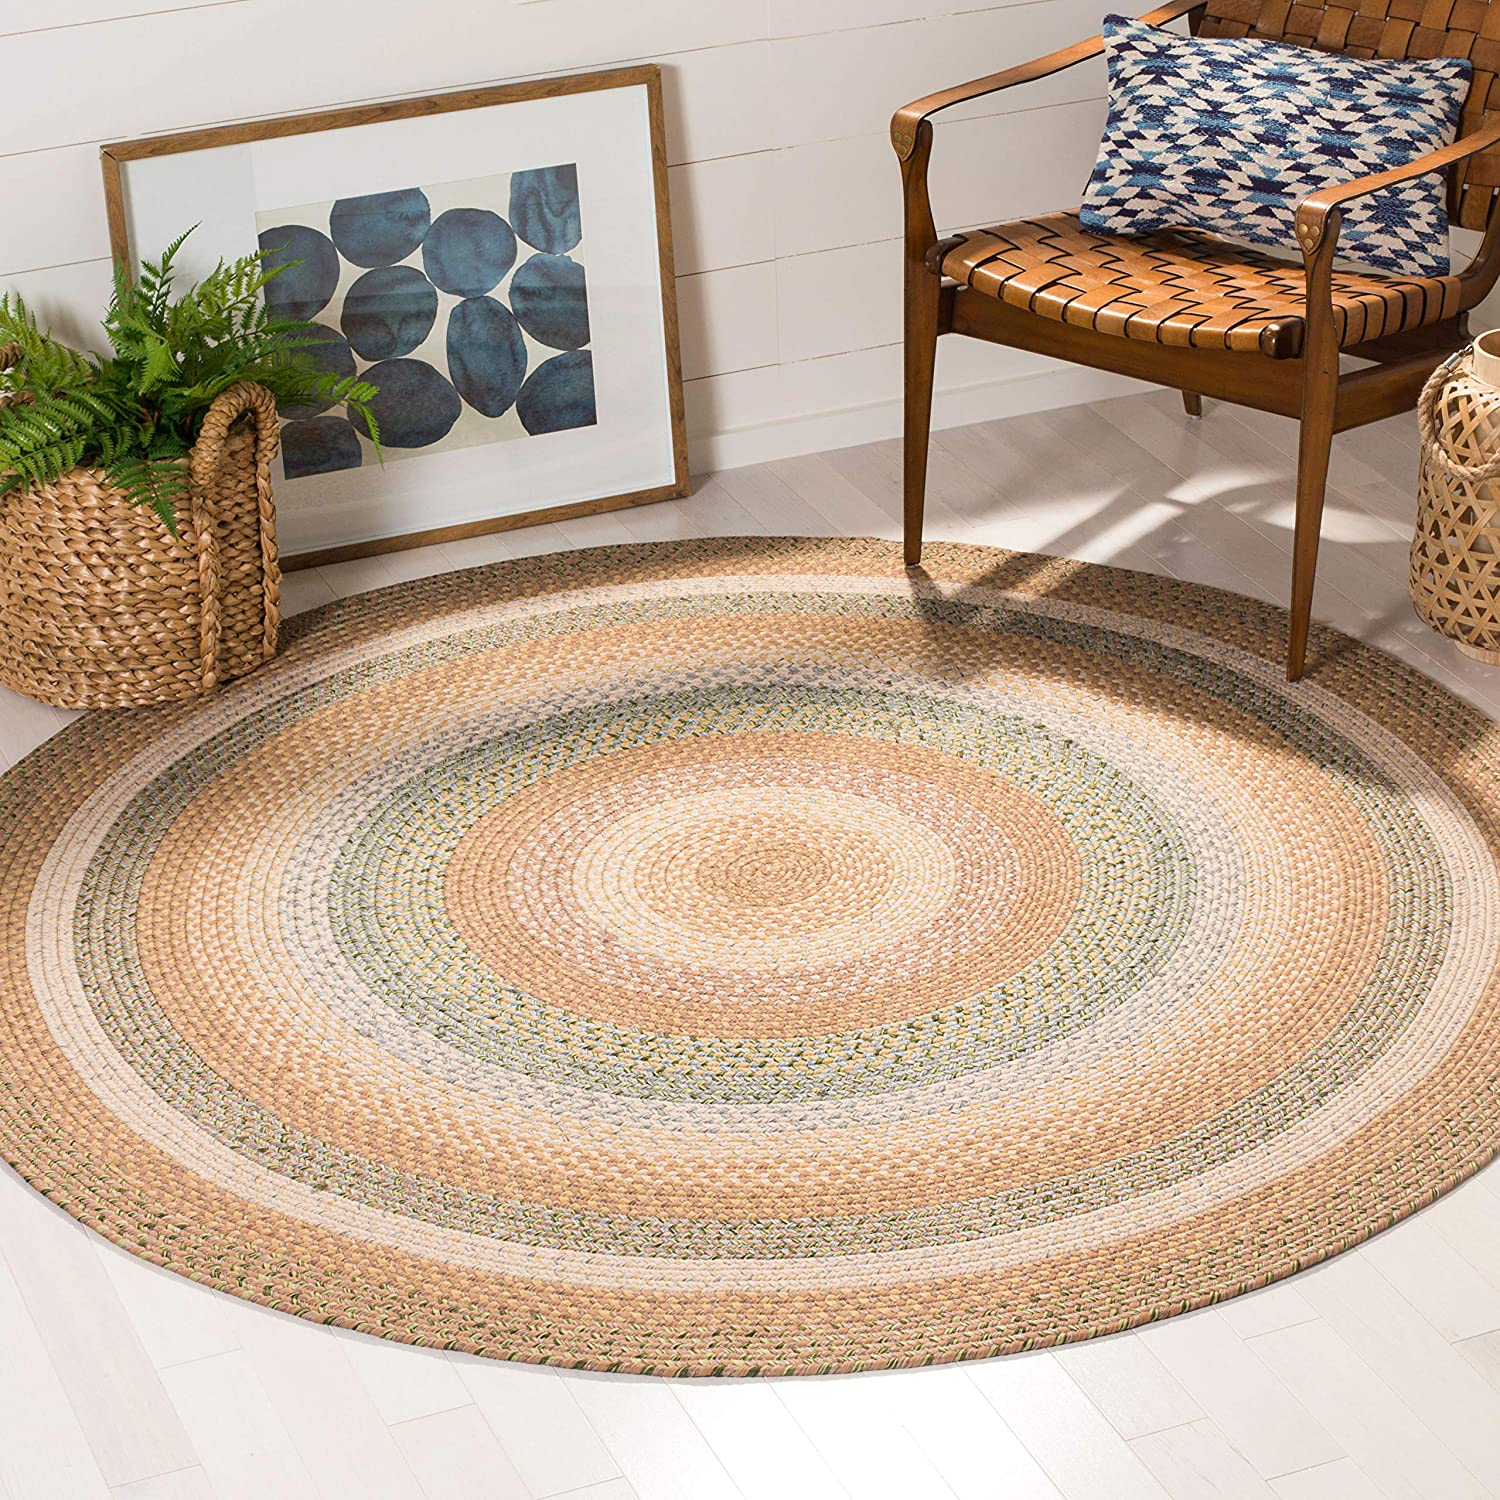 Amazon Com Safavieh Braided Collection Brd314a Handmade Country Cottage Reversible Area Rug 6 X 6 Round Tan Multi Furniture Decor